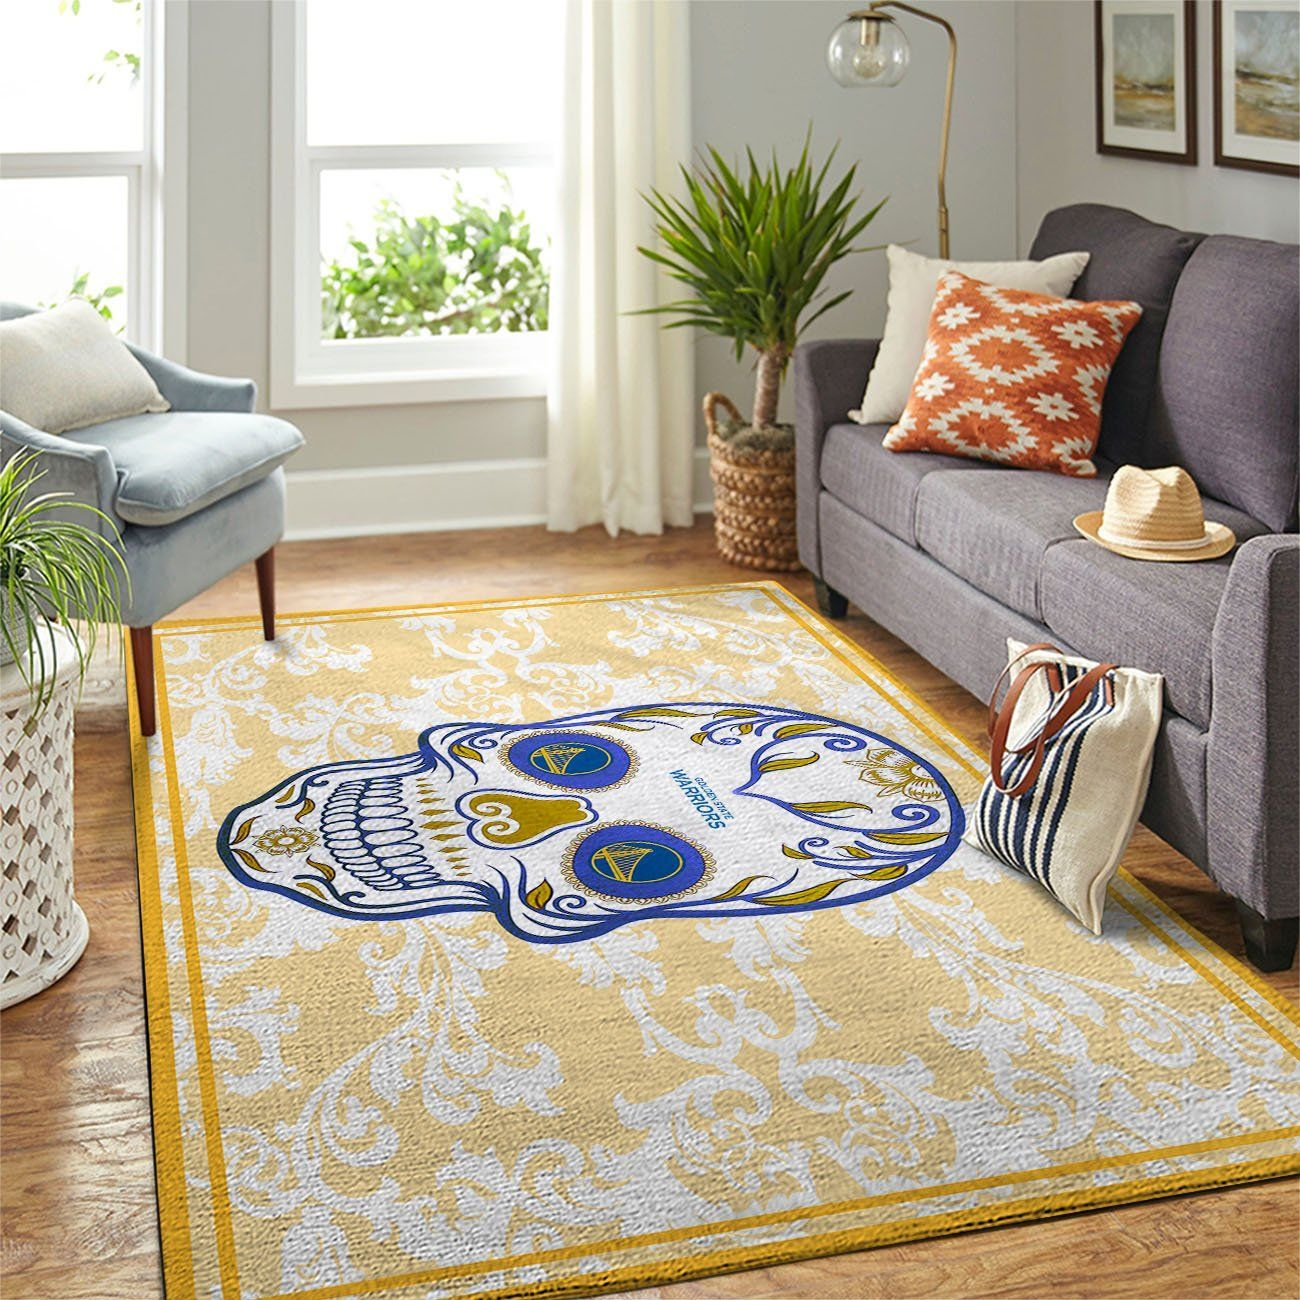 Amazon Golden State Warriors Living Room Area No3092 Rug